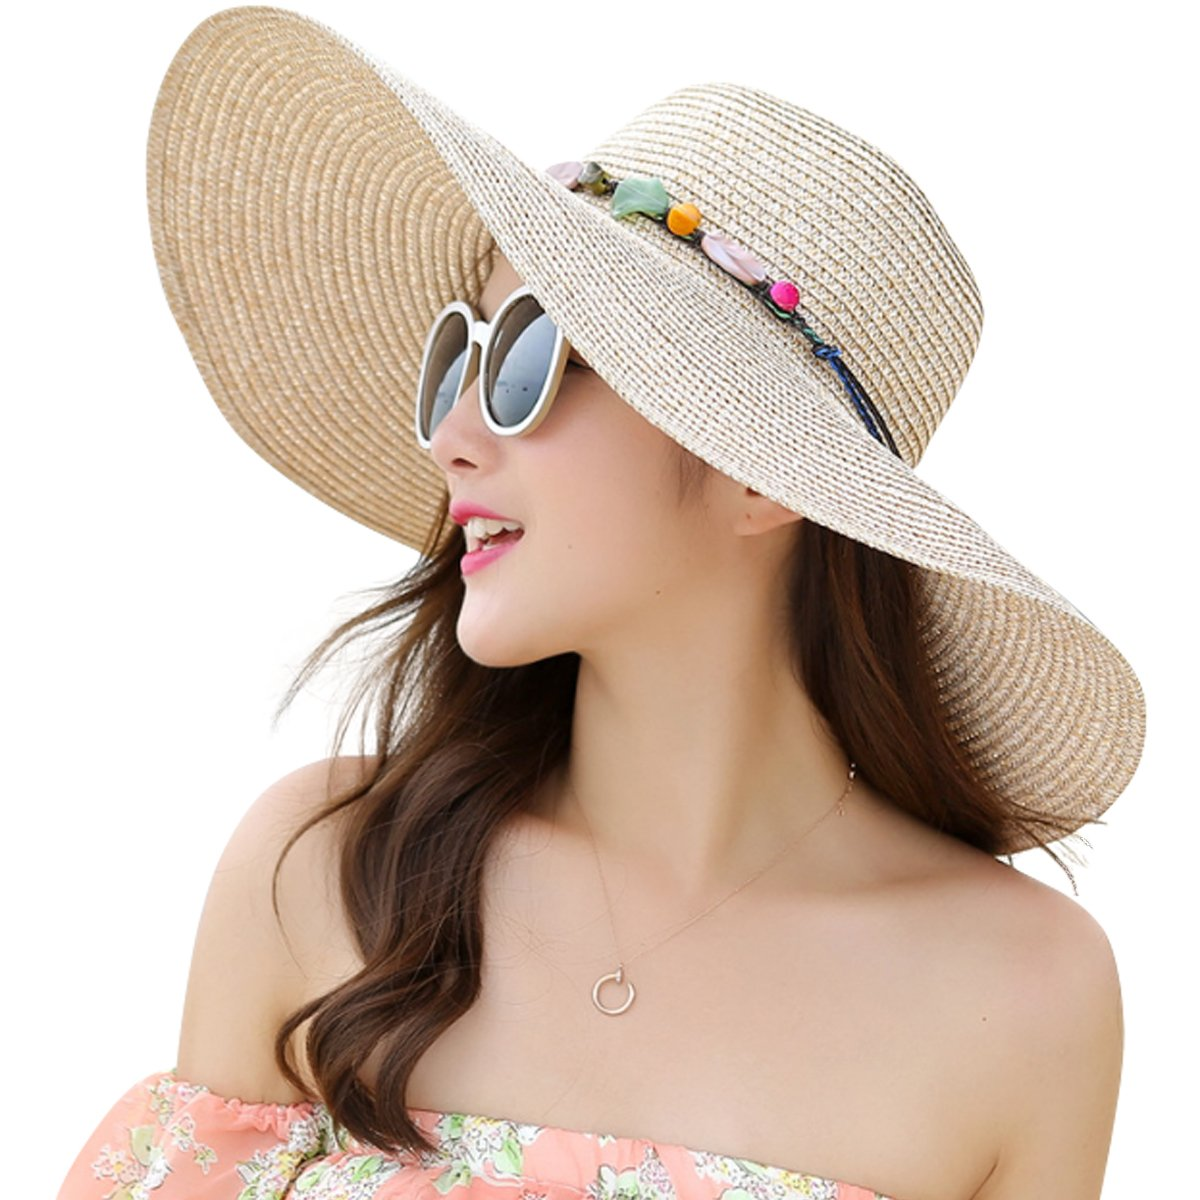 1832b42f Lanzom Womens Wide Brim Straw Hat Floppy Foldable Roll up Cap Beach Sun Hat  UPF 50+ (Style A-Khaki) at Amazon Women's Clothing store: